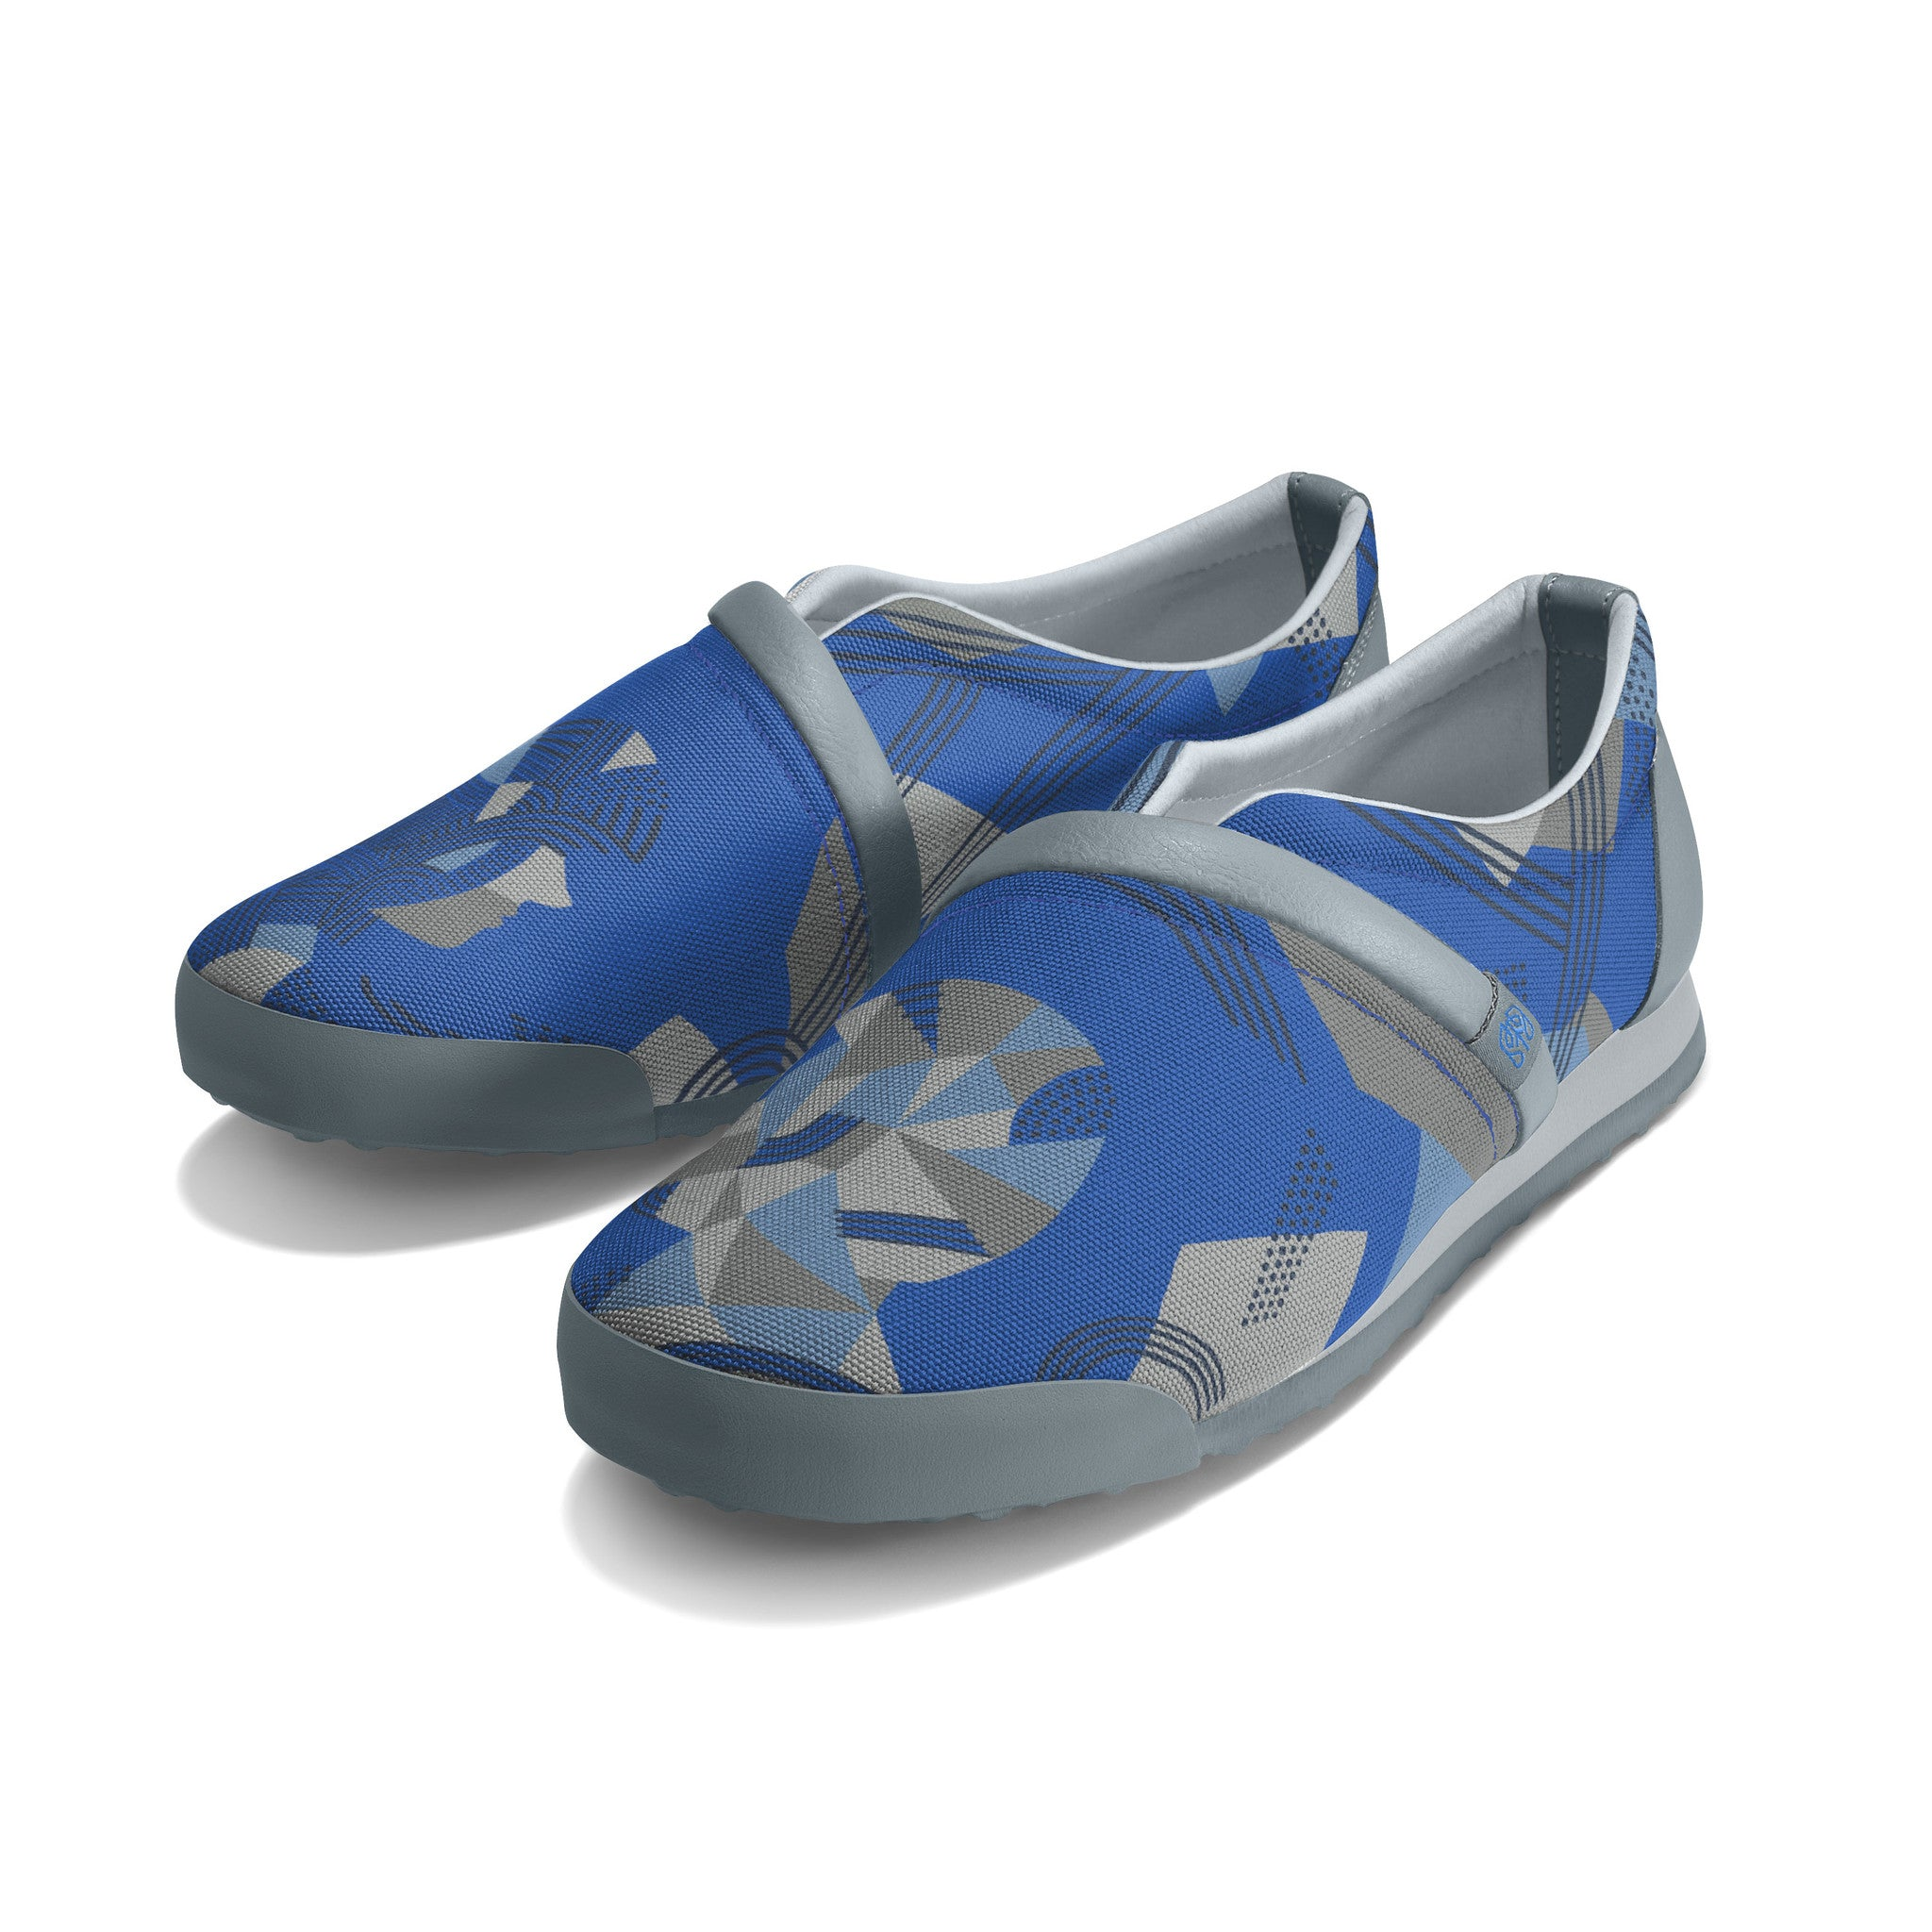 Strong_Blue - Common Ground Footwear Shoes Left Perspective View